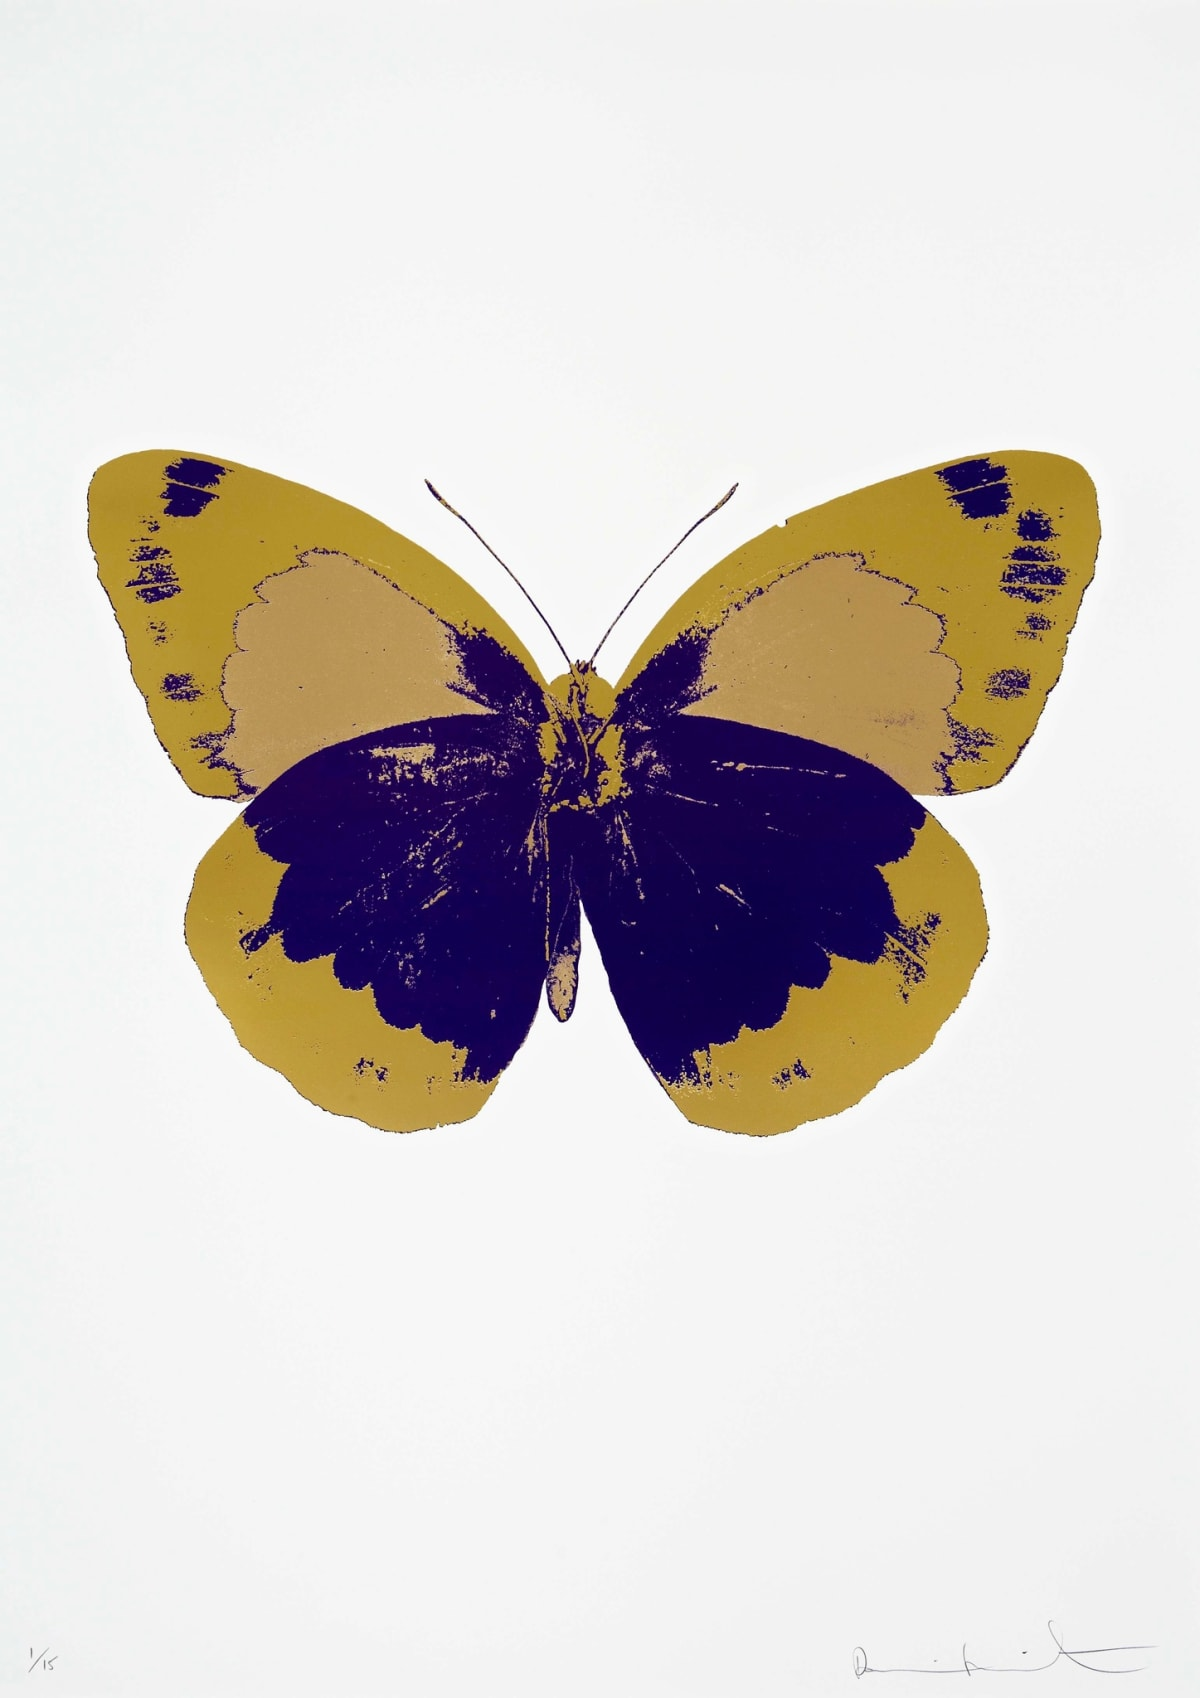 Damien Hirst The Souls II - Imperial Purple/Oriental Gold/Hazy Gold, 2010 3 colour foil block on 300gsm Arches 88 archival paper. Signed and numbered. Published by Paul Stolper and Other Criteria 72 x 51cm OC7887 / 658-70 Edition of 15